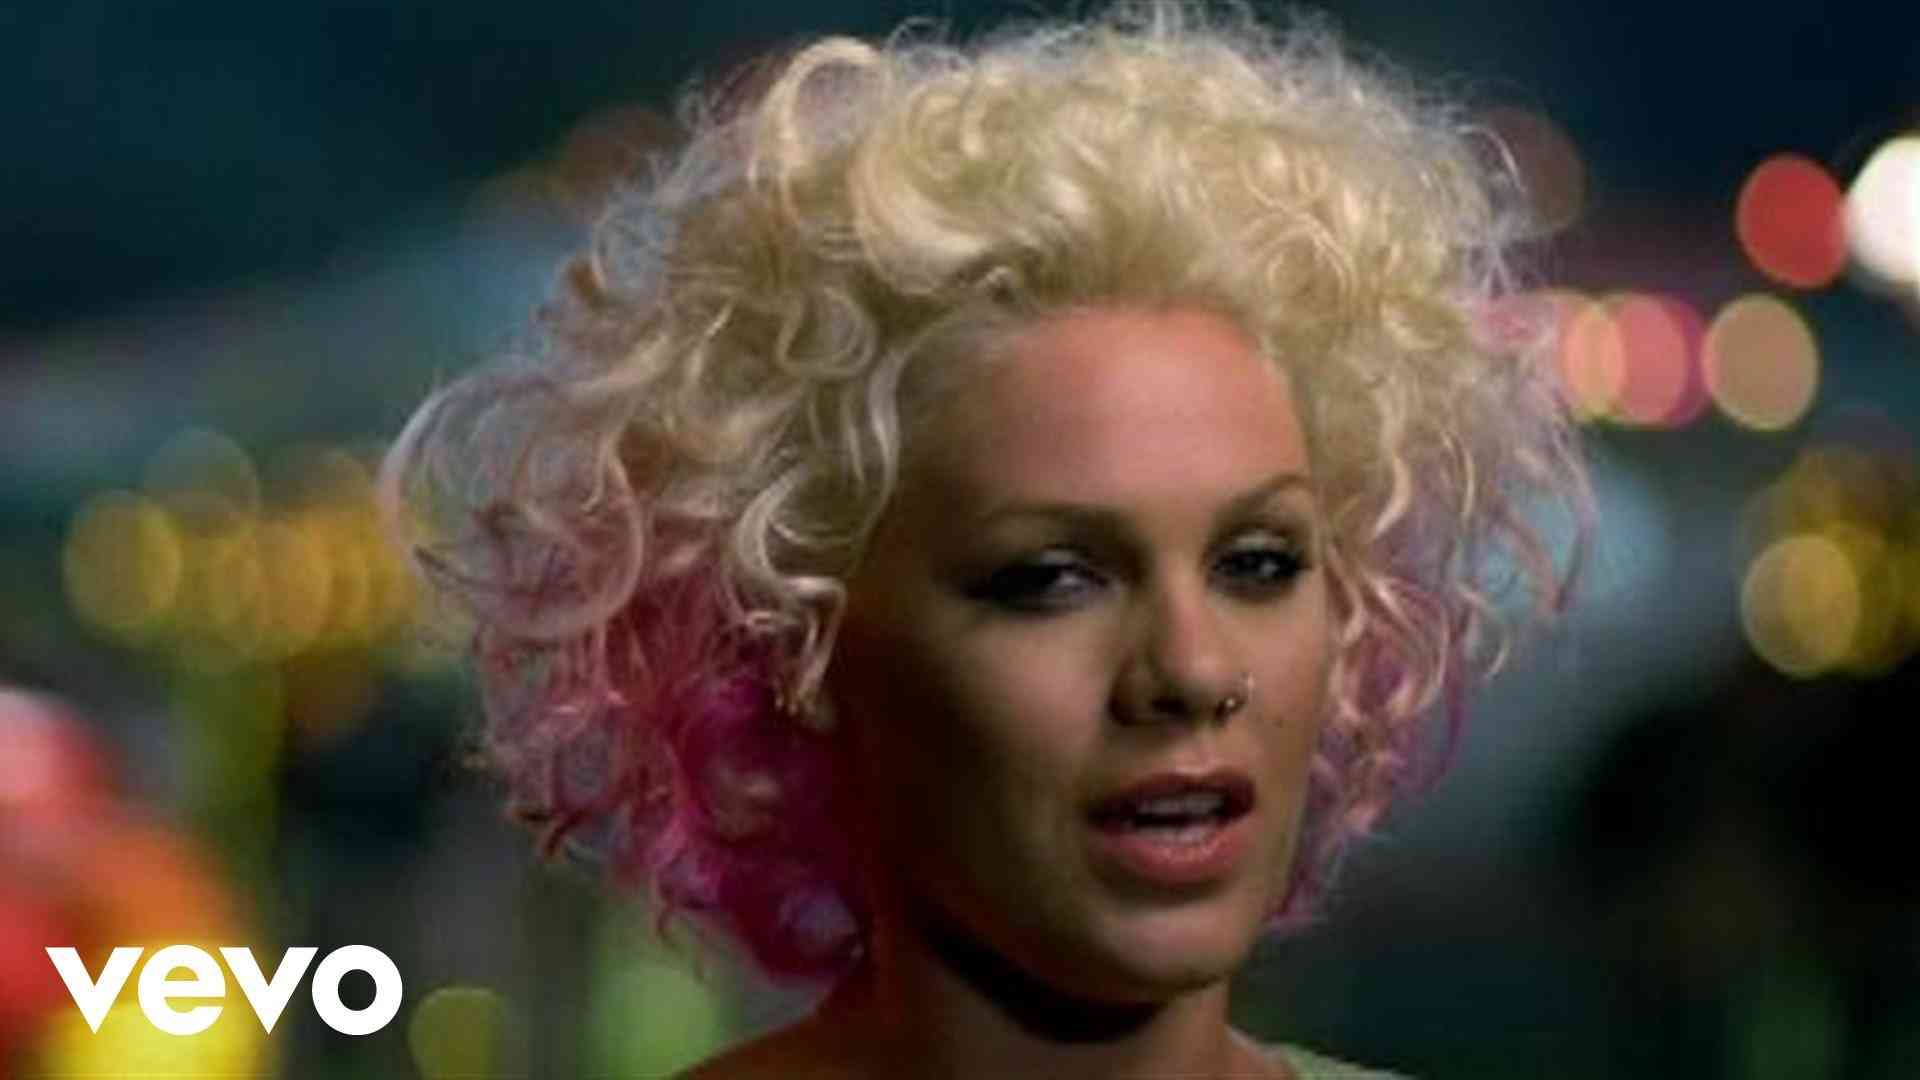 P!nk - Who Knew - YouTube